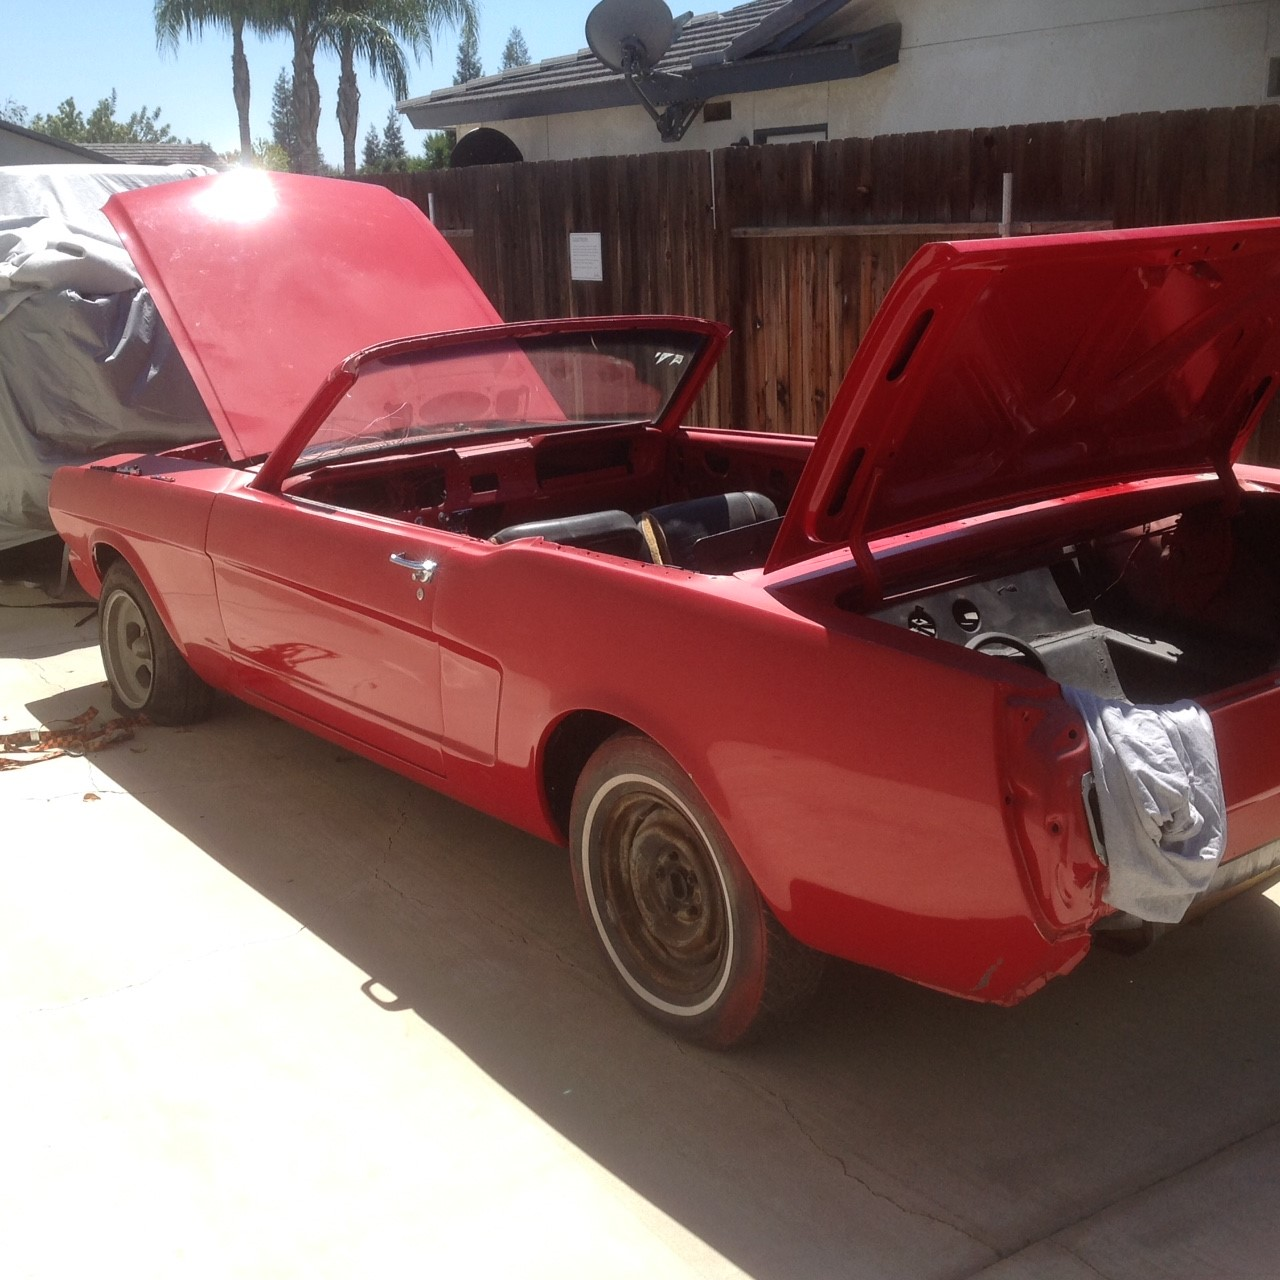 1966 Ford Mustang ready for restoration